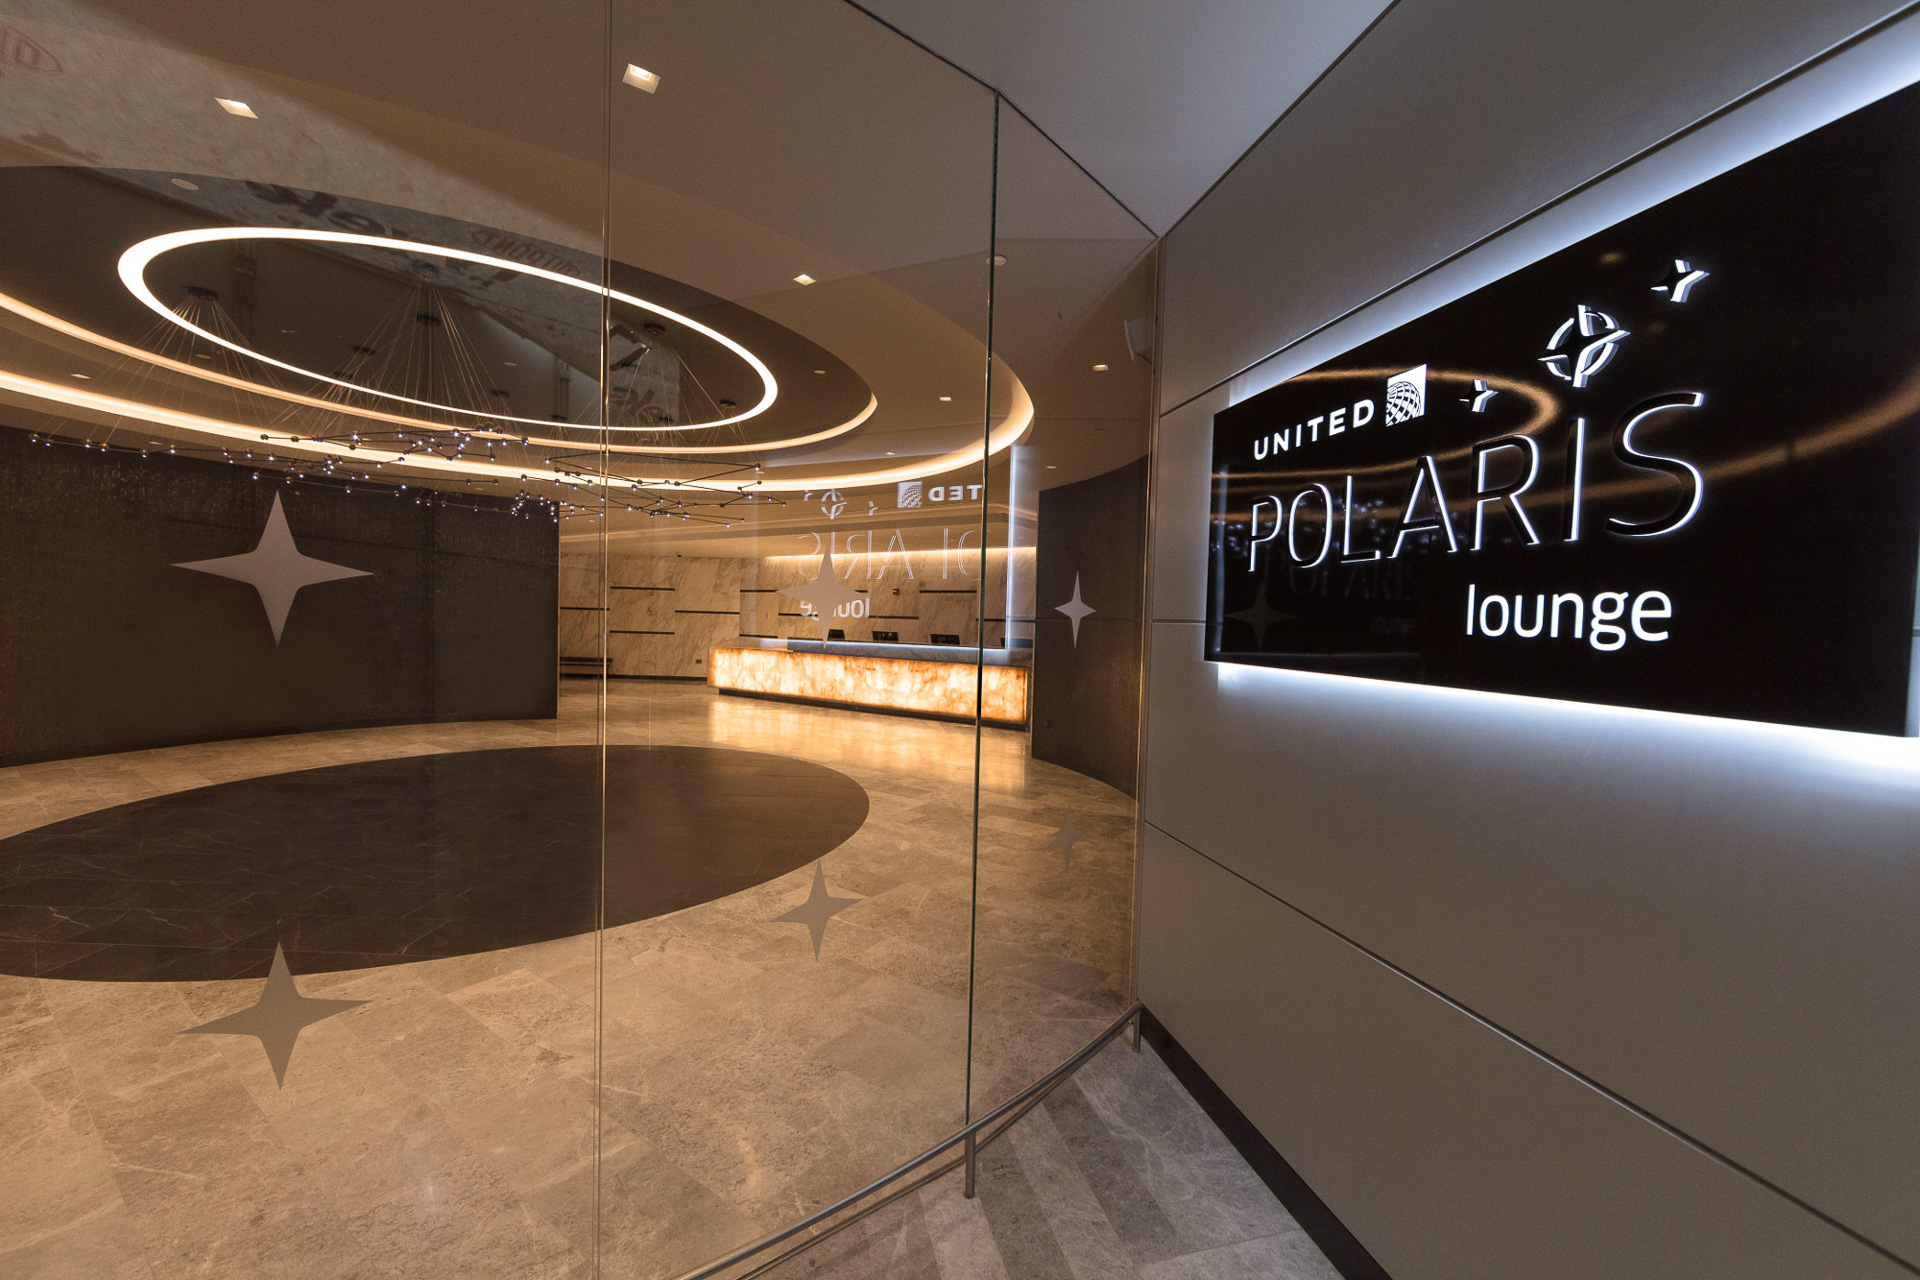 United-Polaris-lounge-at-EWR-1